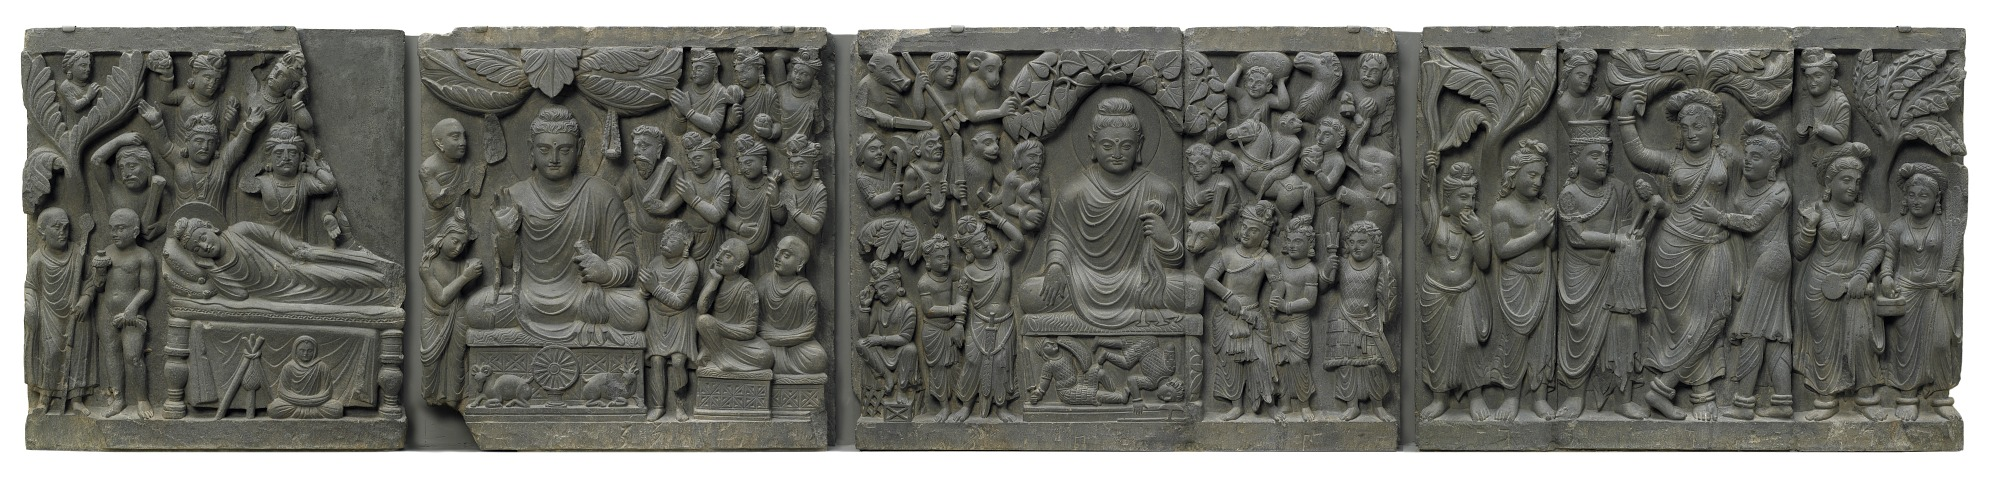 : Scenes from the life of the Buddha